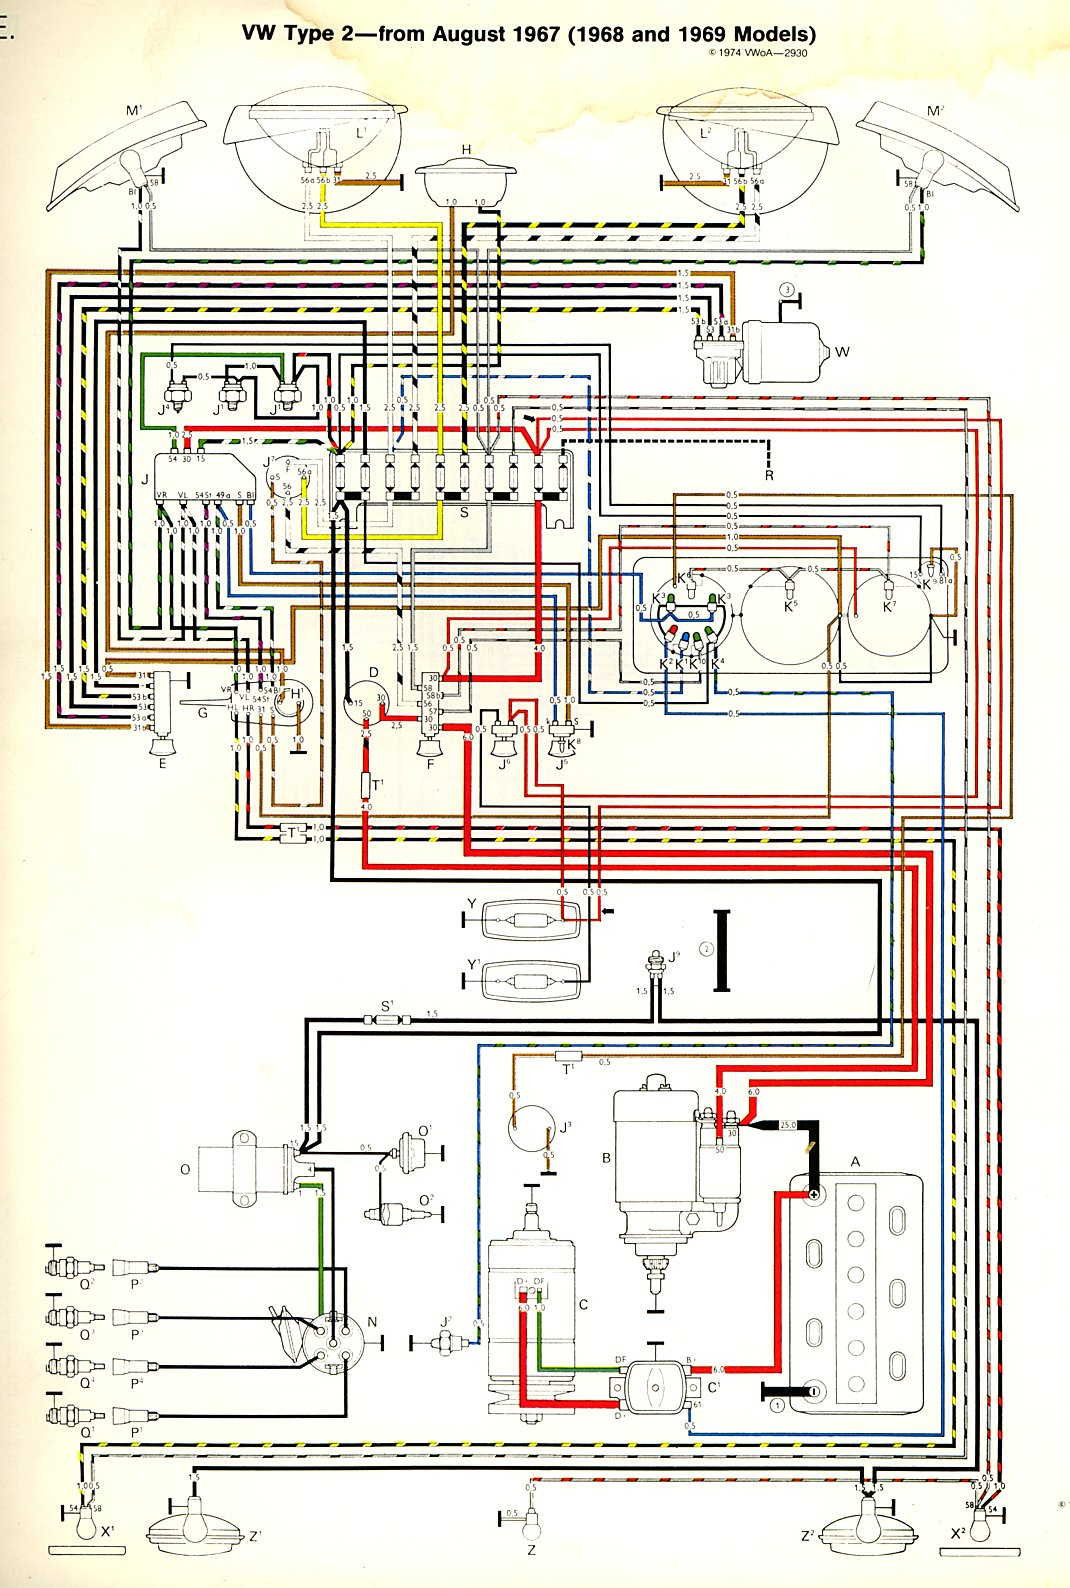 baybus_6869a 1968 69 bus wiring diagram thegoldenbug com 1969 bug wiring diagram at creativeand.co